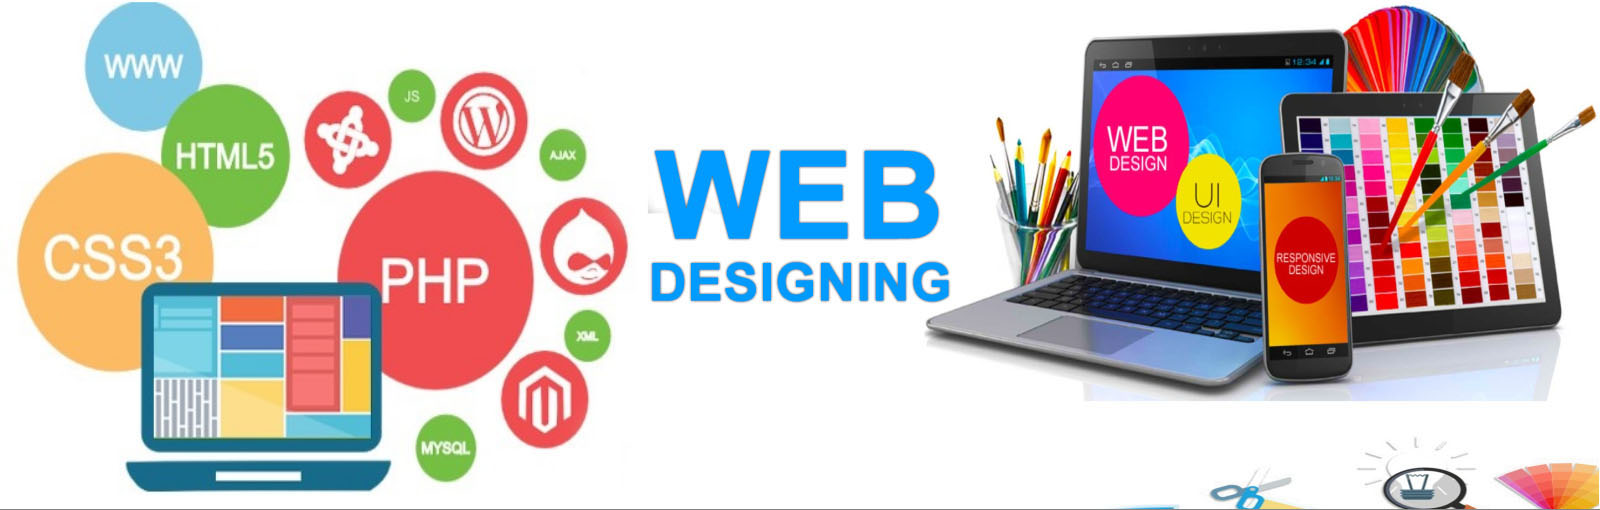 Website Design Training Institute in Delhi, PHP MySQL Training Institute in Delhi, Digital Marketing Training Institute in Delhi, Website Content Writing Training Institute in Delhi